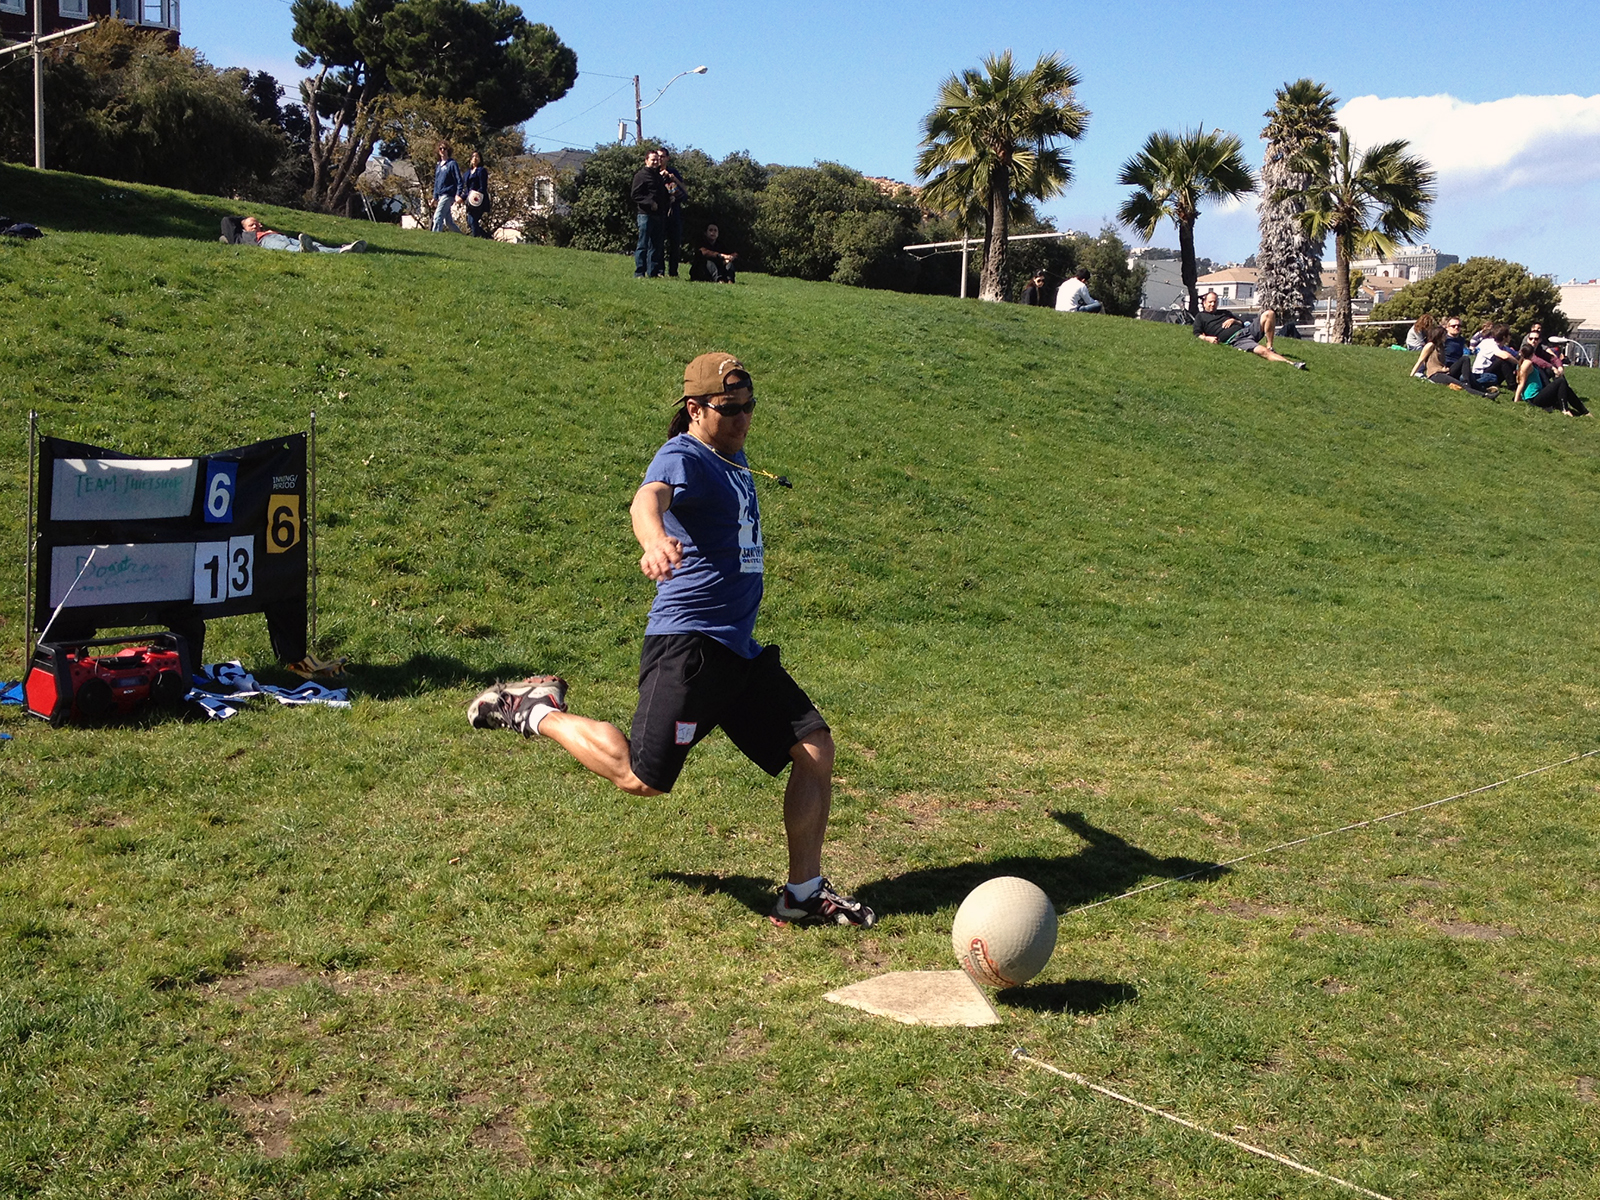 Kickballers try to boot denizens out of SF's Dolores Park; hilarity ensues